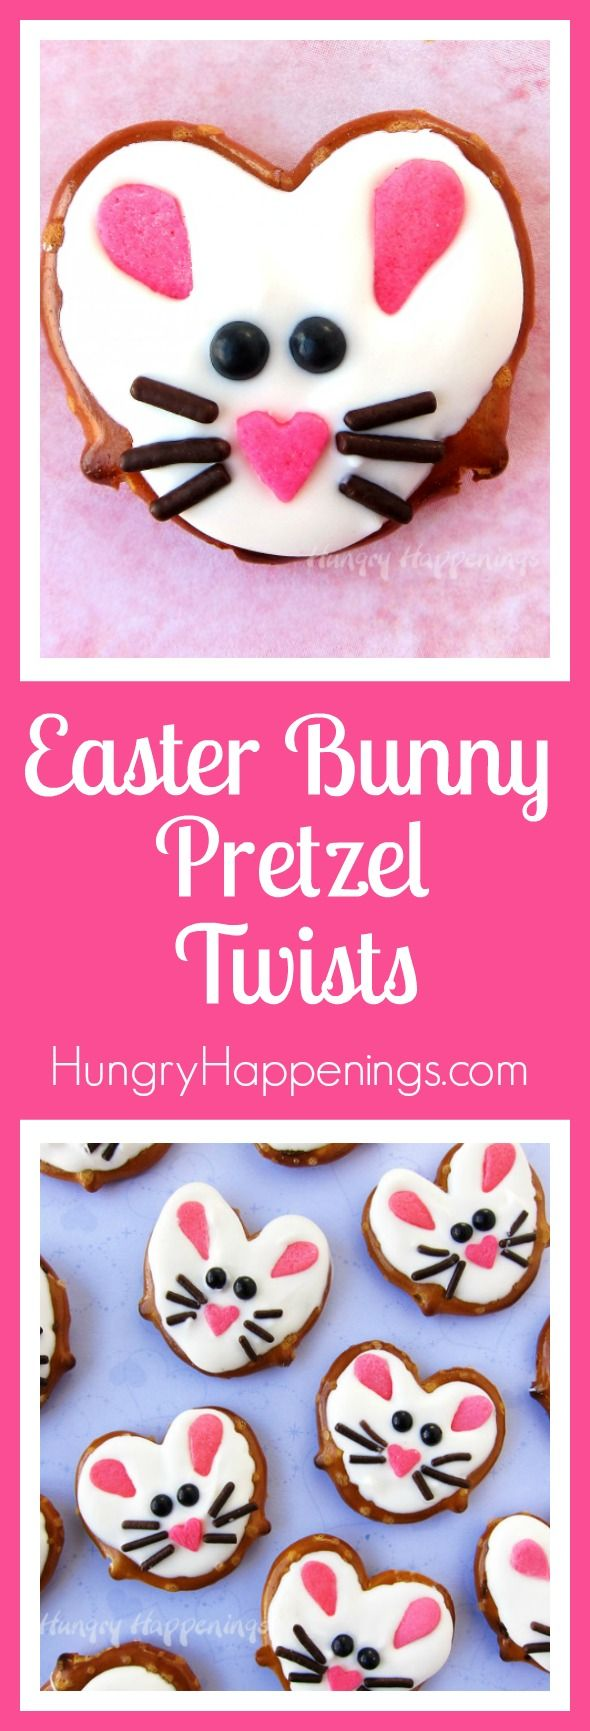 These salty and sweet Easter Bunny Pretzel Twists are so darn cute and easy to make using heart shapes sprinkles, chocolate jimmies, and black candy pearls. These cute treats are perfect basket fillers! Stop by HungryHappenings.com to watch the video tutorial.